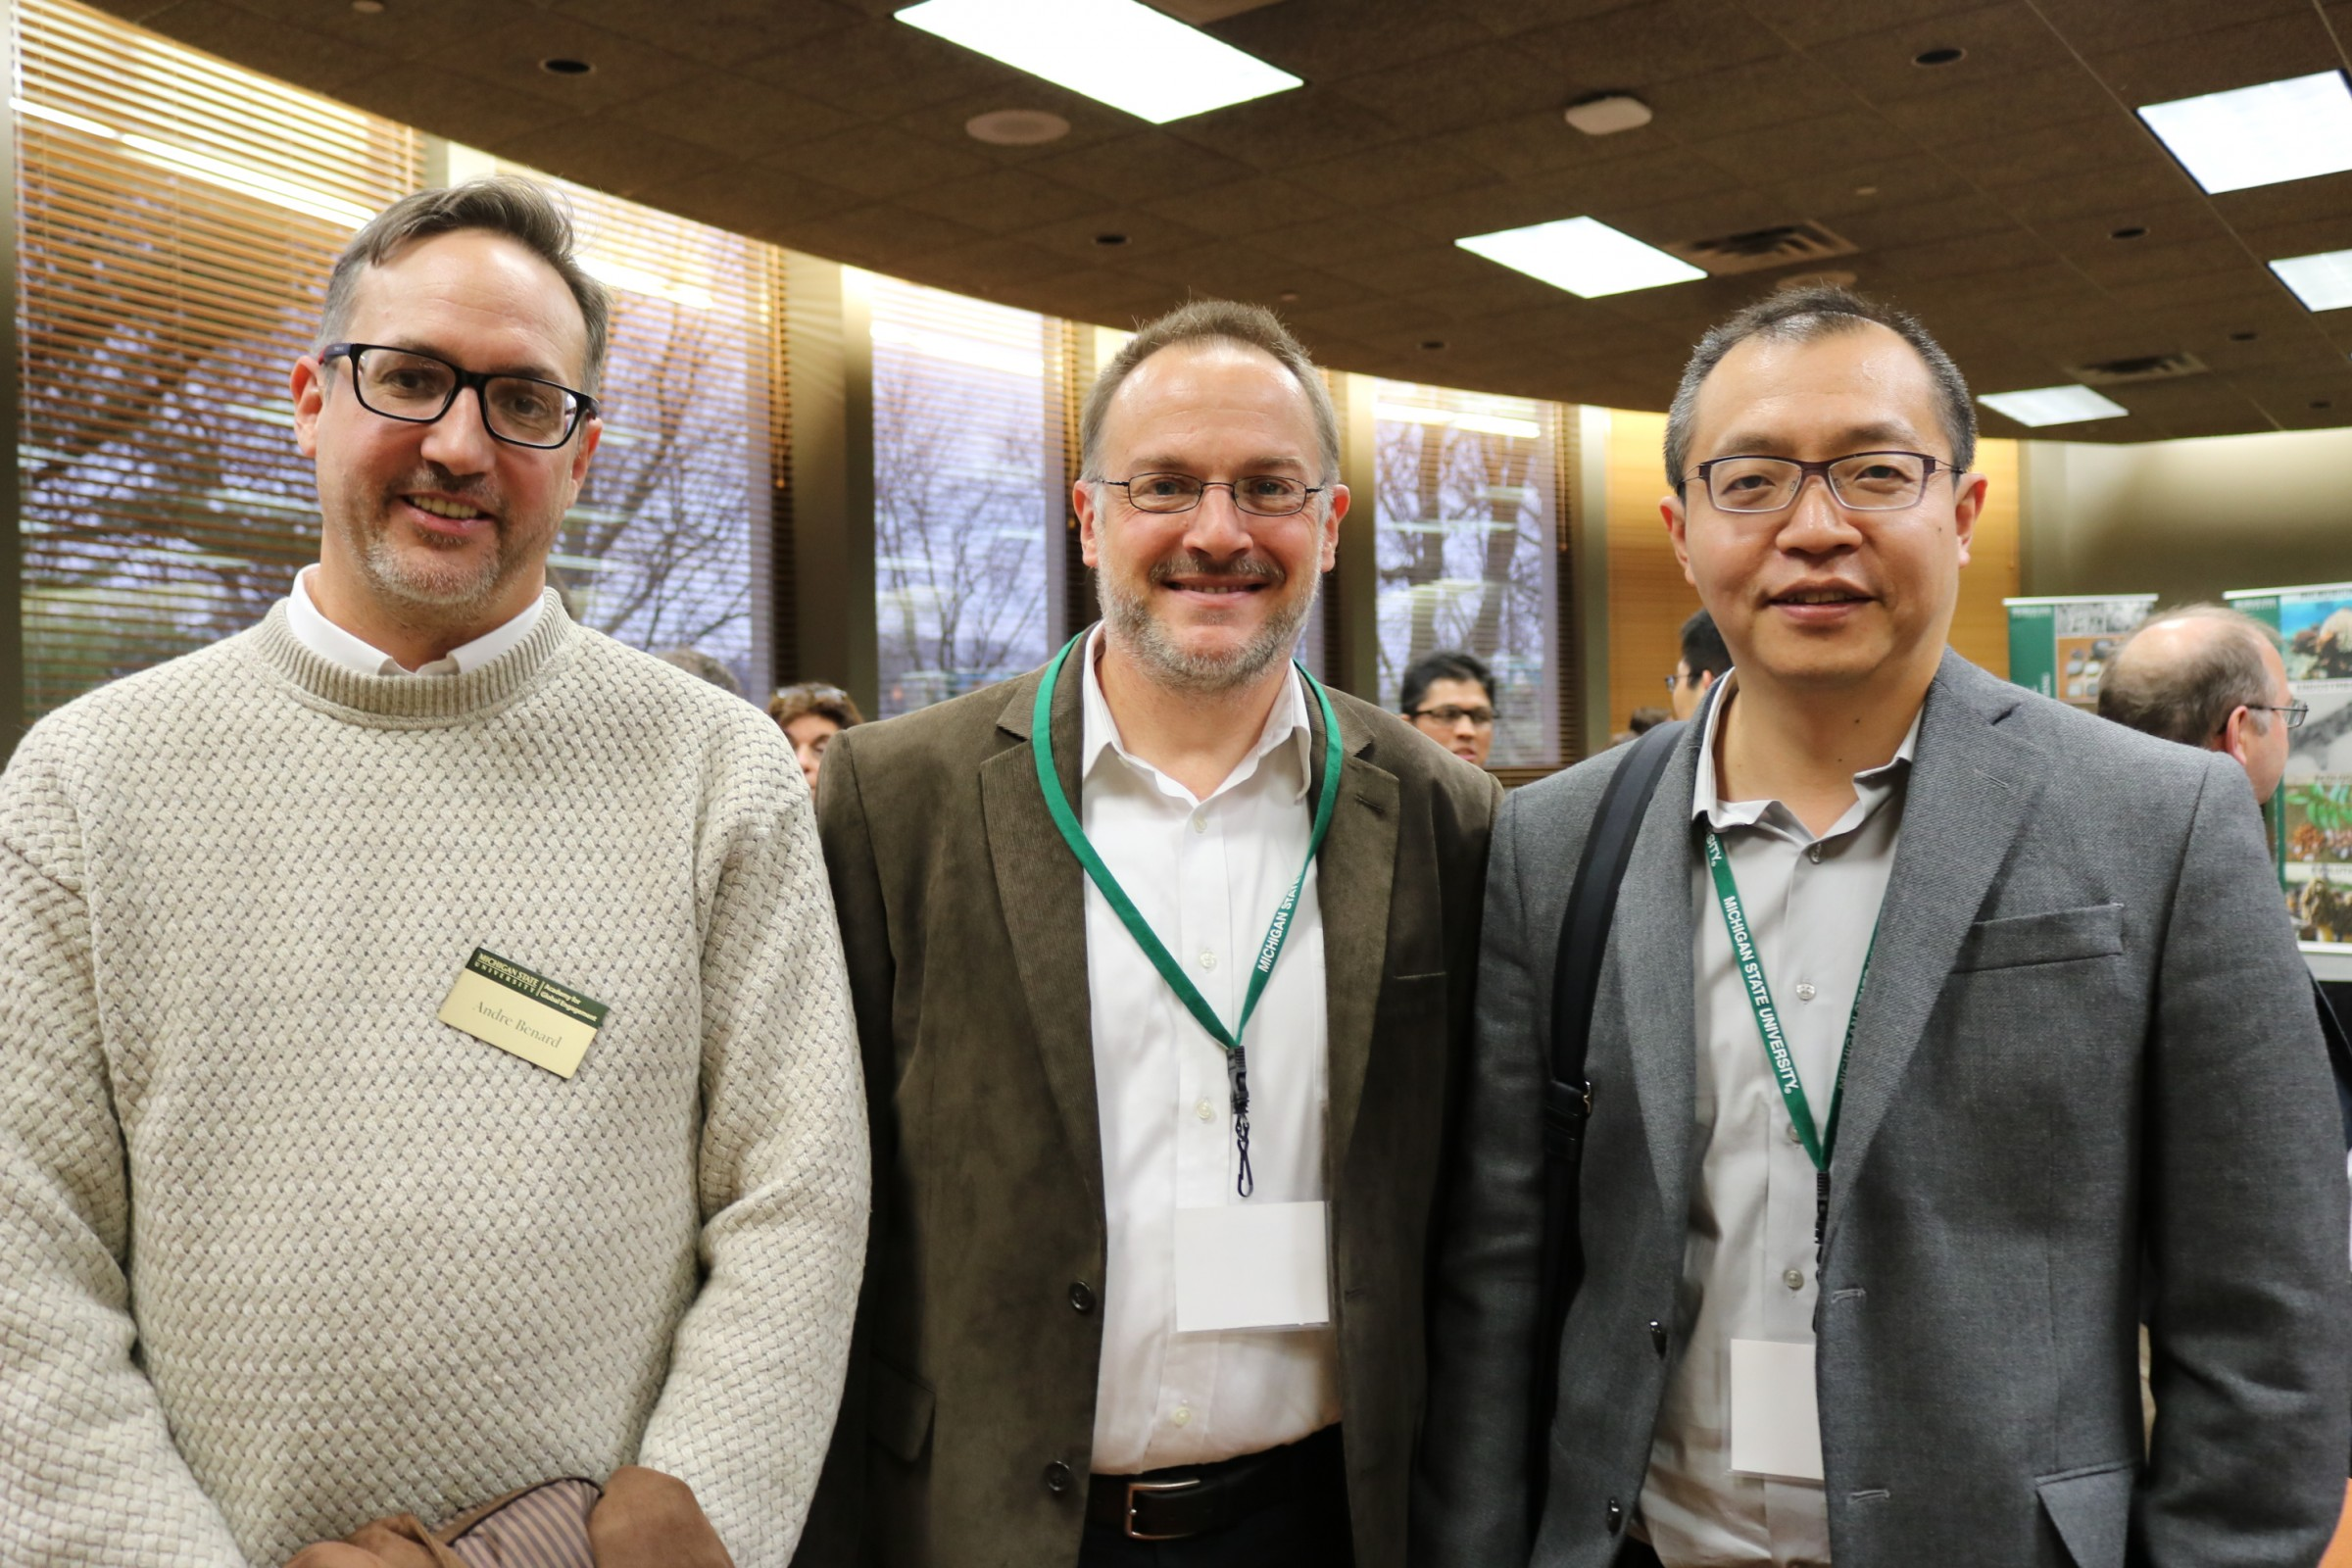 2017 AGE fellow Andre Benard was welcomed by 2016 fellows Scott Calabrese Barton and Wei Lai during the Global Innovation Forum on Dec. 5 in the Kellogg Center.